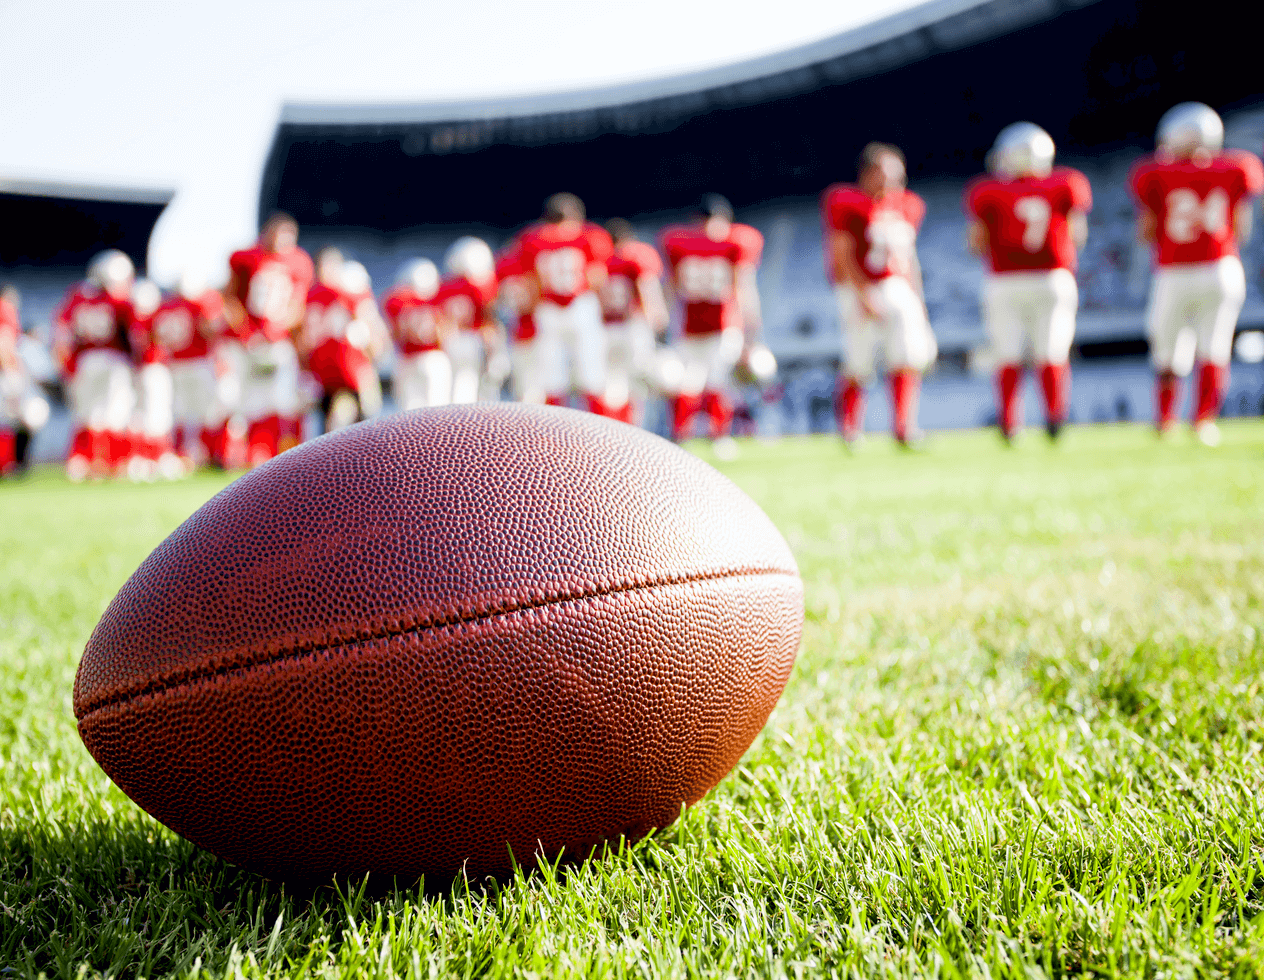 Photo of a football on a field with a team of players wearing red jerseys standing behind it in the background.